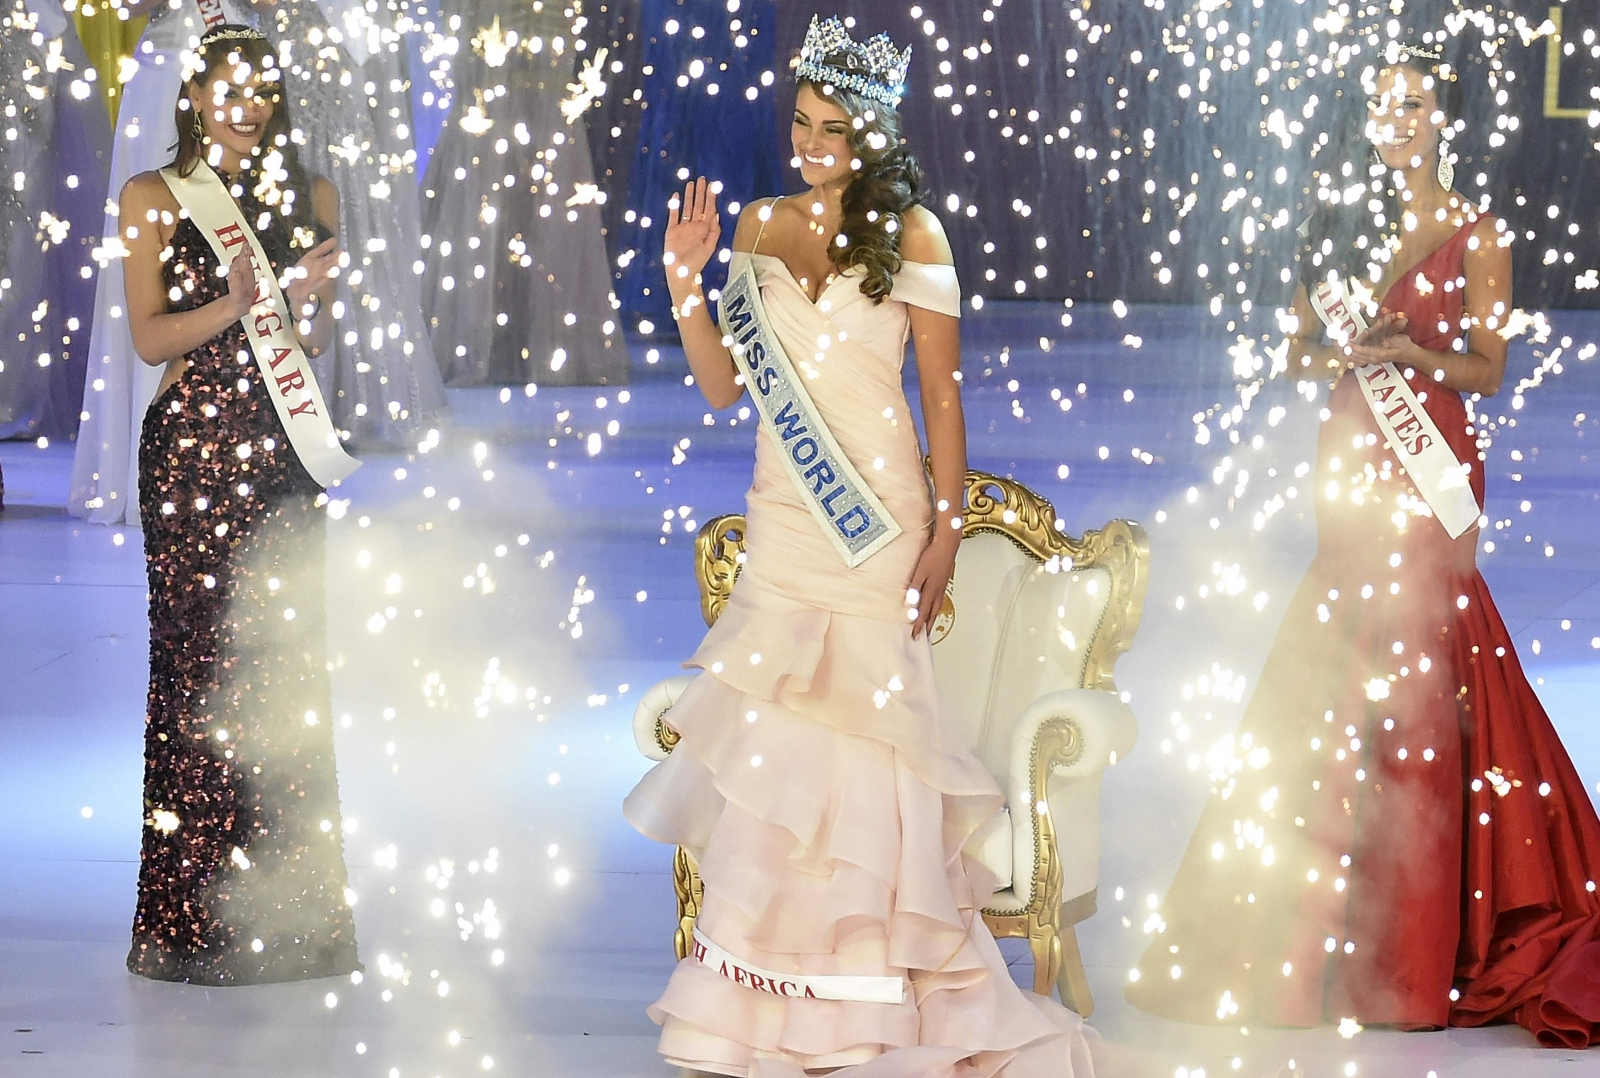 Miss South Africa crowned Miss World 2014